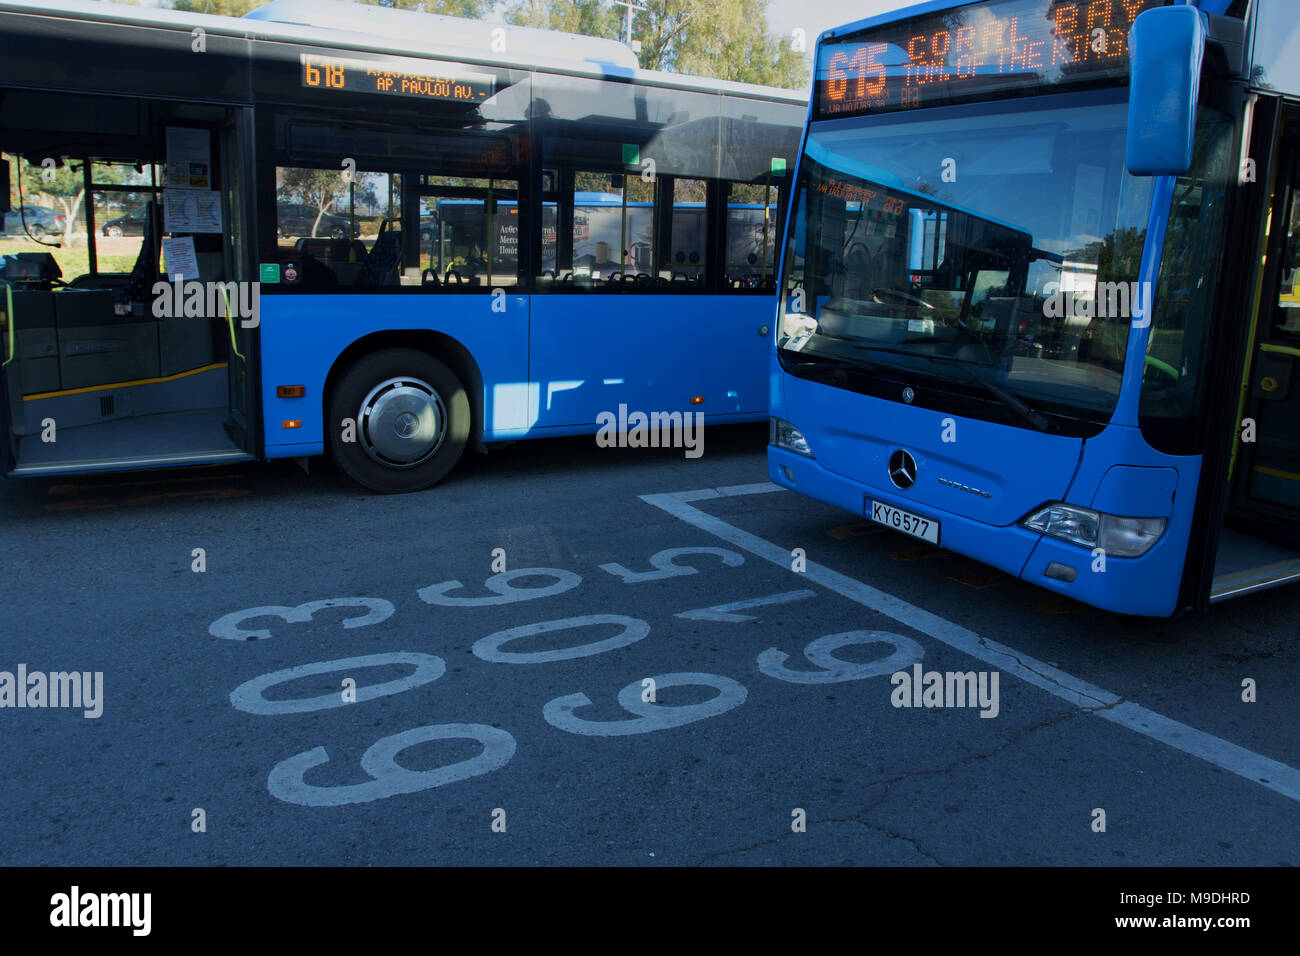 Blue paphos district busses at the kato-paphos  embarkation bus station showing route markings for local area, cyprus, mediterranean europe - Stock Image